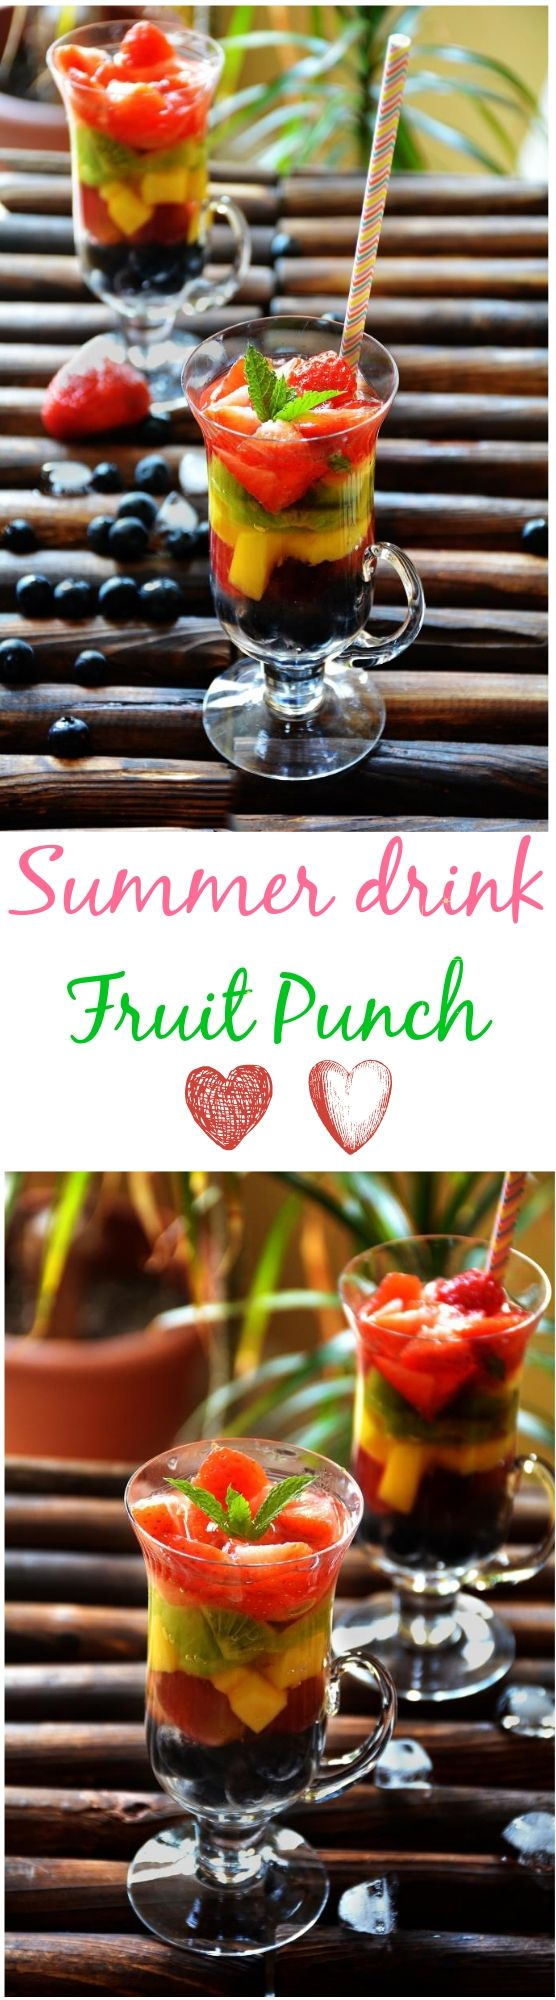 Fruit punch is a thirst quenching monsoon drink. This fruit punch mock tail is a very good combination of bright coloured fruits and lemonade.